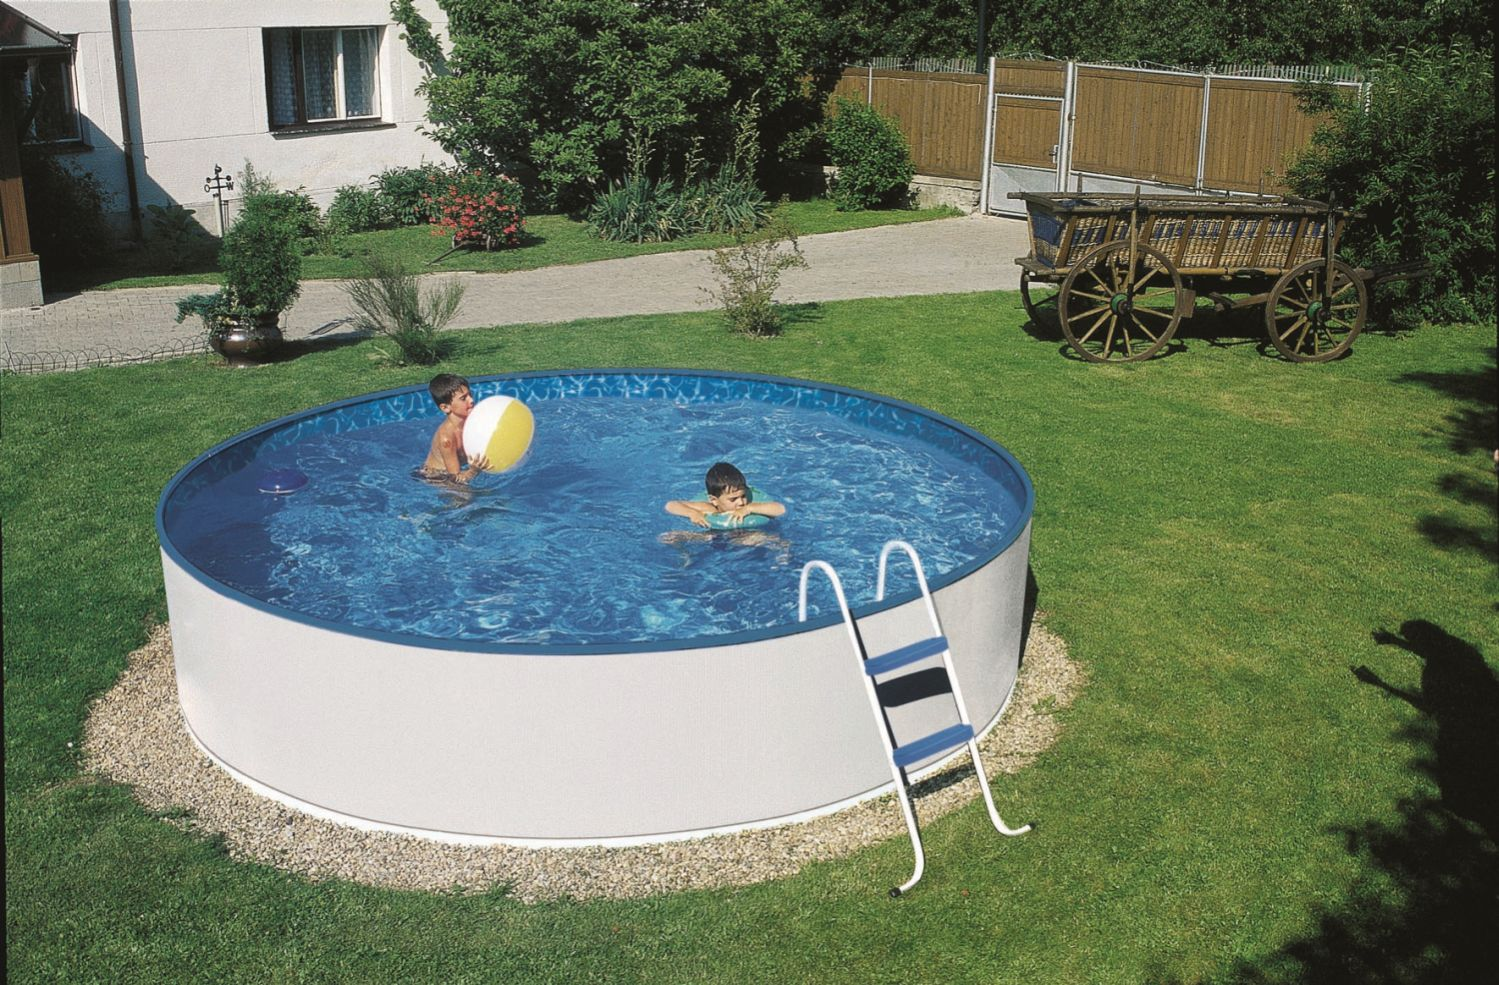 Pool Thermometer Rund Baumarkt Göllnitz Online Shop Mypool Splash Pool Weiß Ø